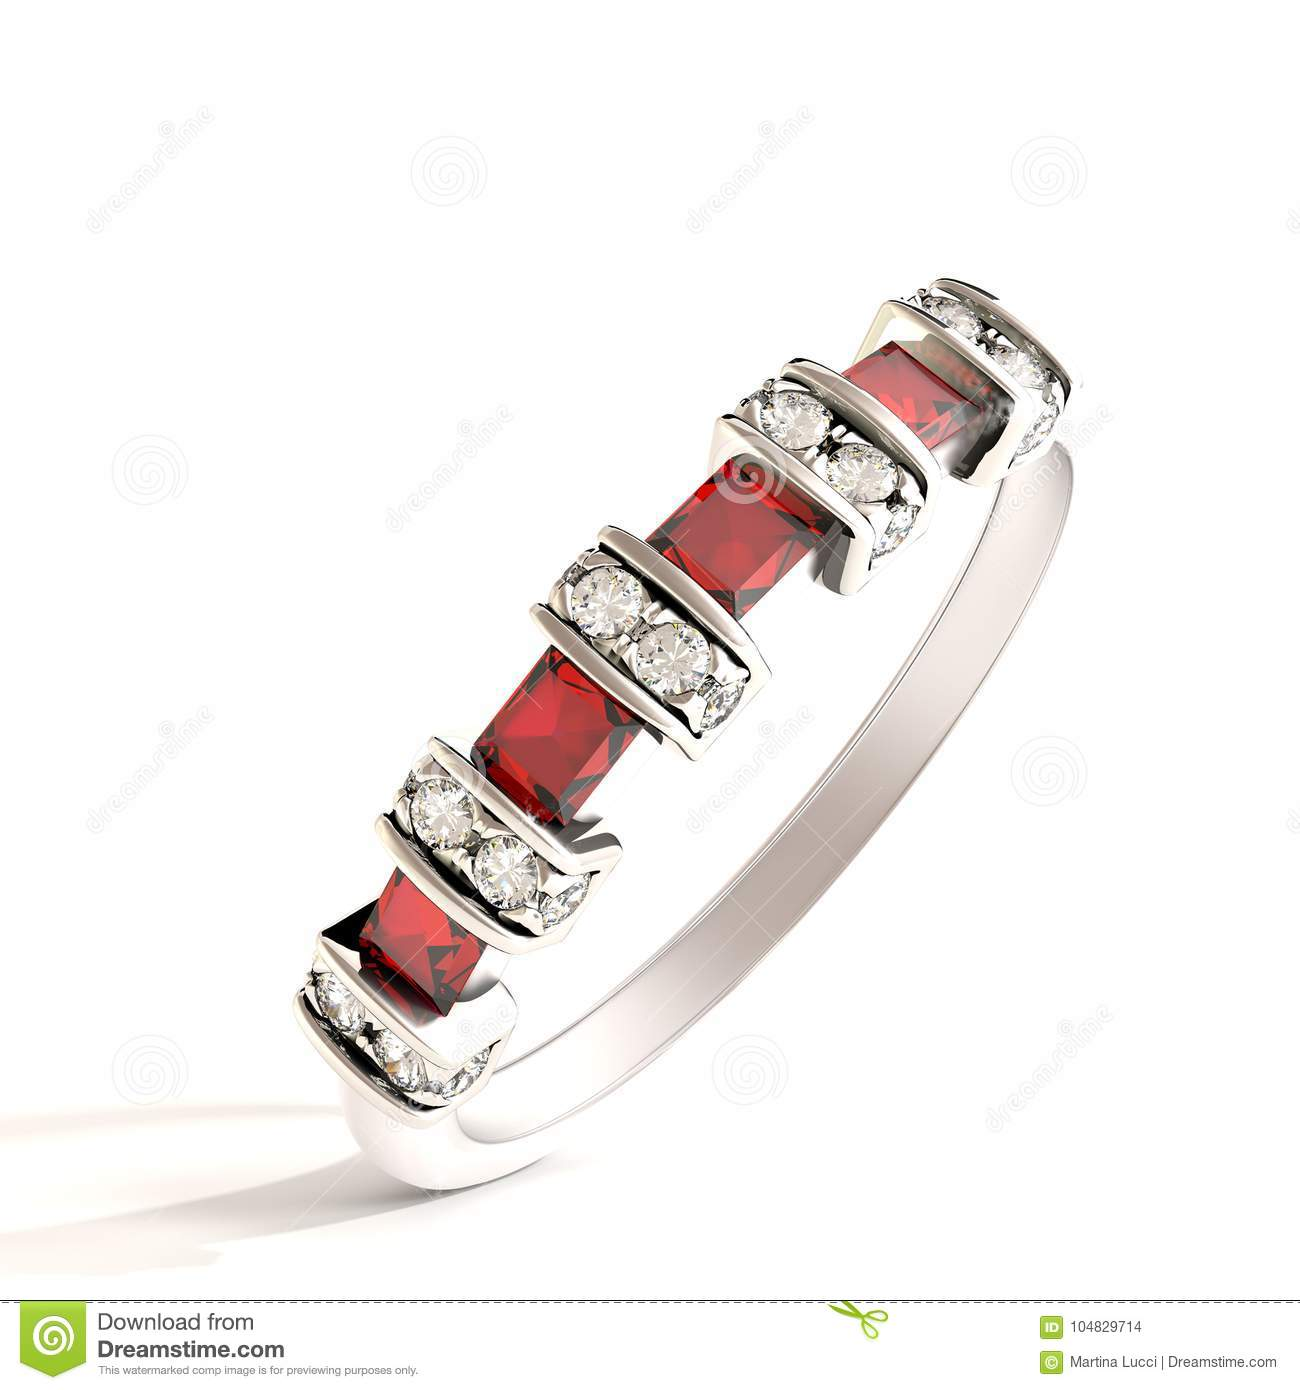 Exclusive gold ring for ladies with ruby and diamonds.